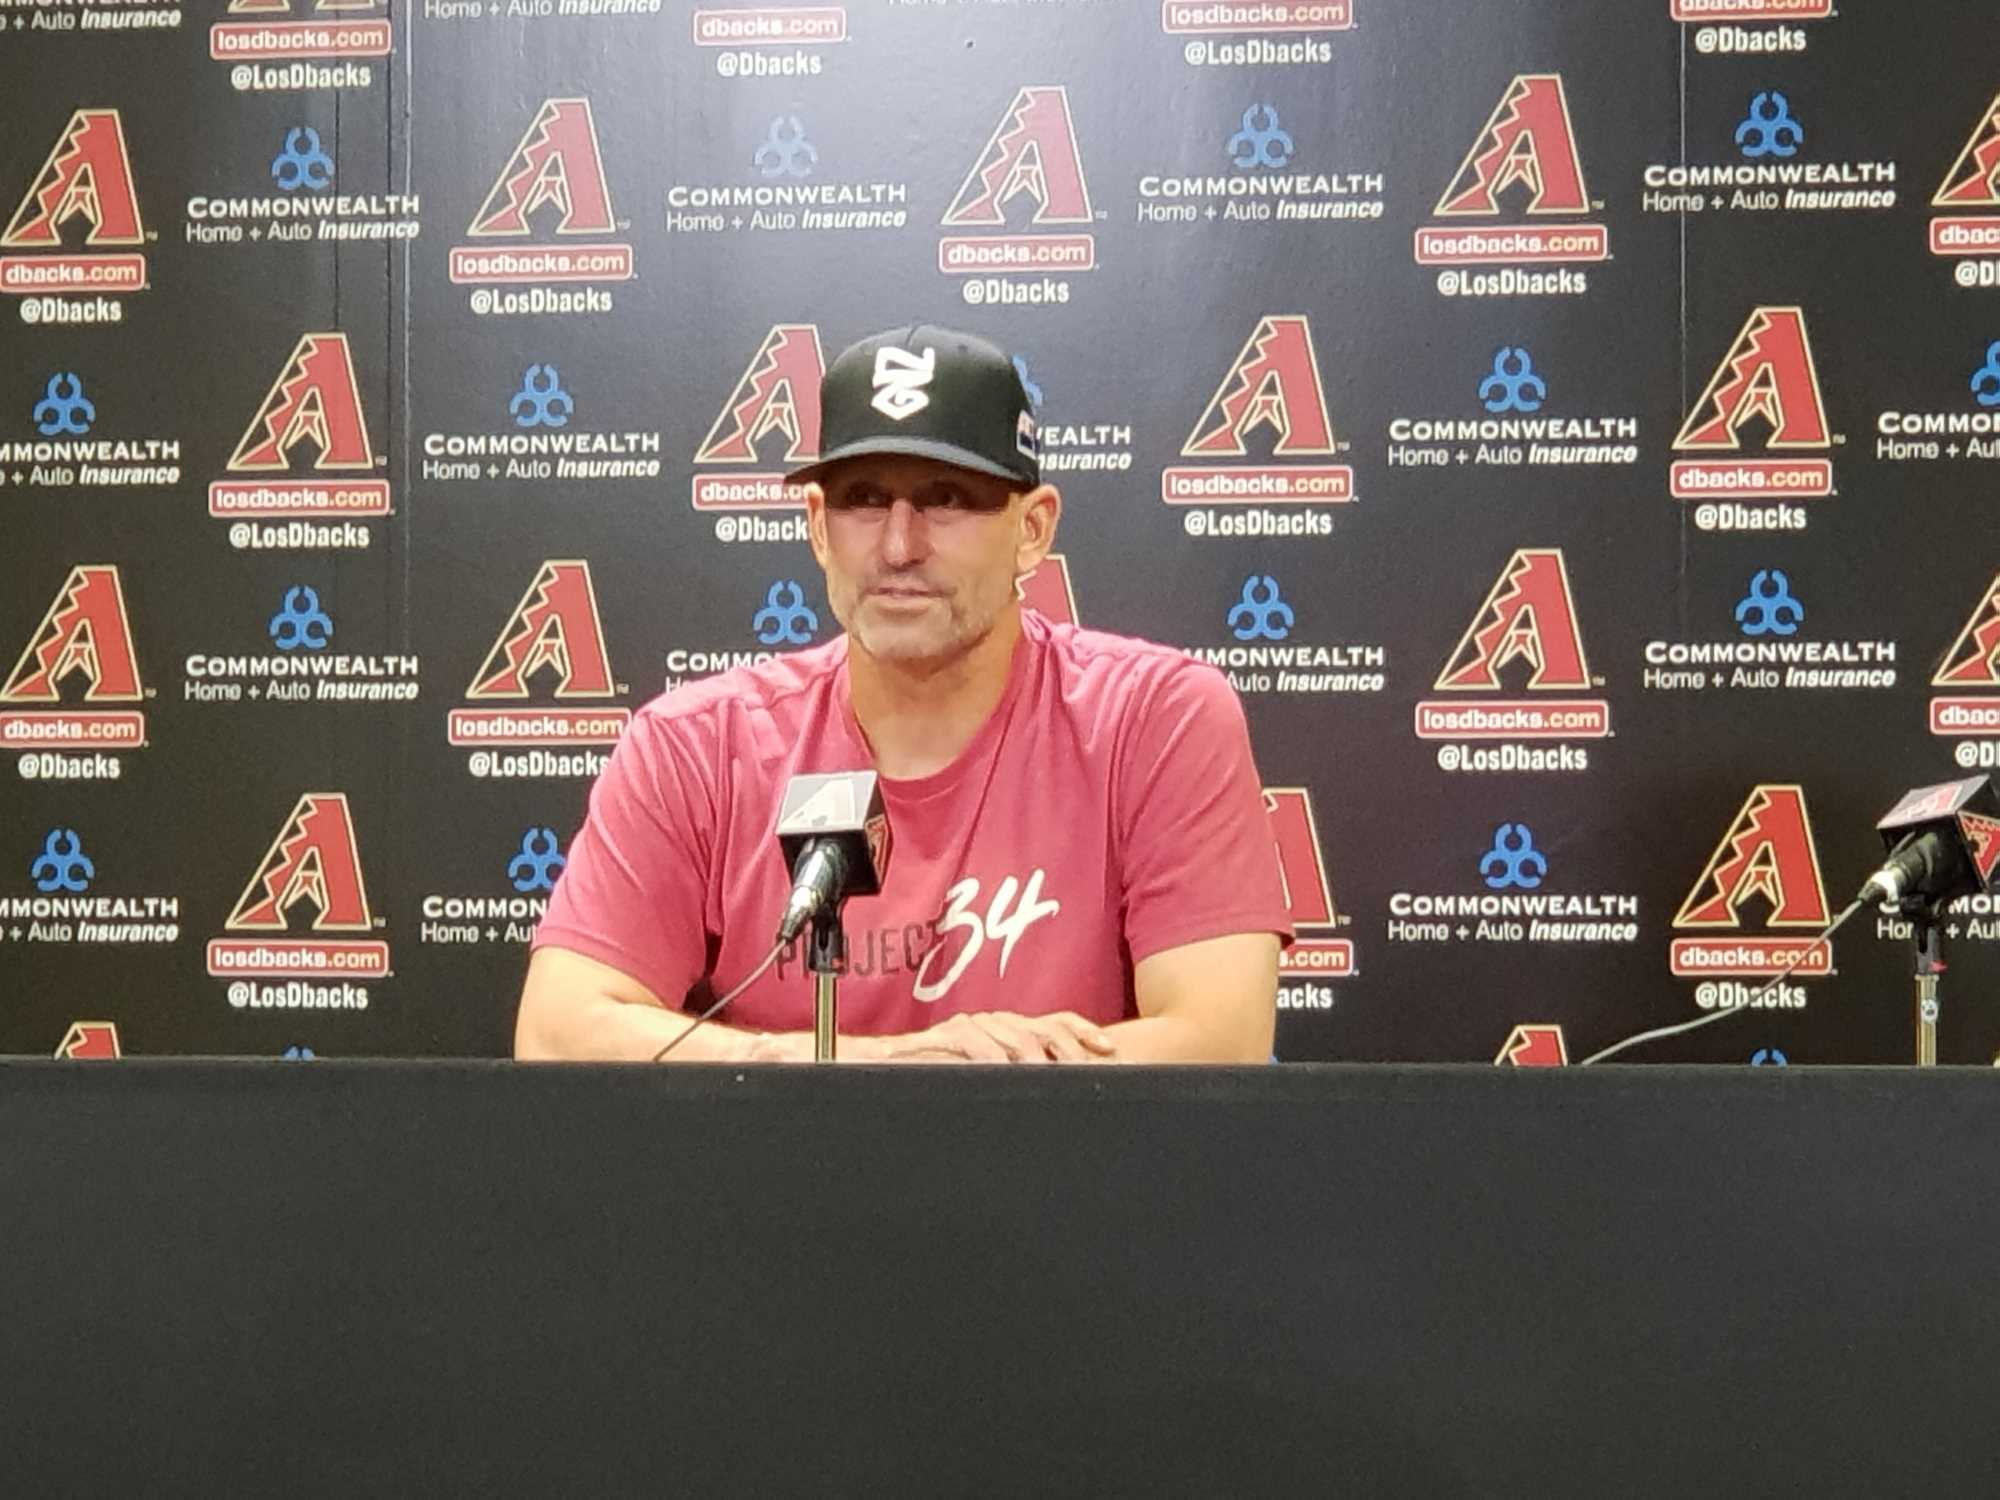 39a20b5c188 D backs Manager Torey Lovullo proudly wears his Baseball New Zealand cap in  Monday s Pre-game Press Conference